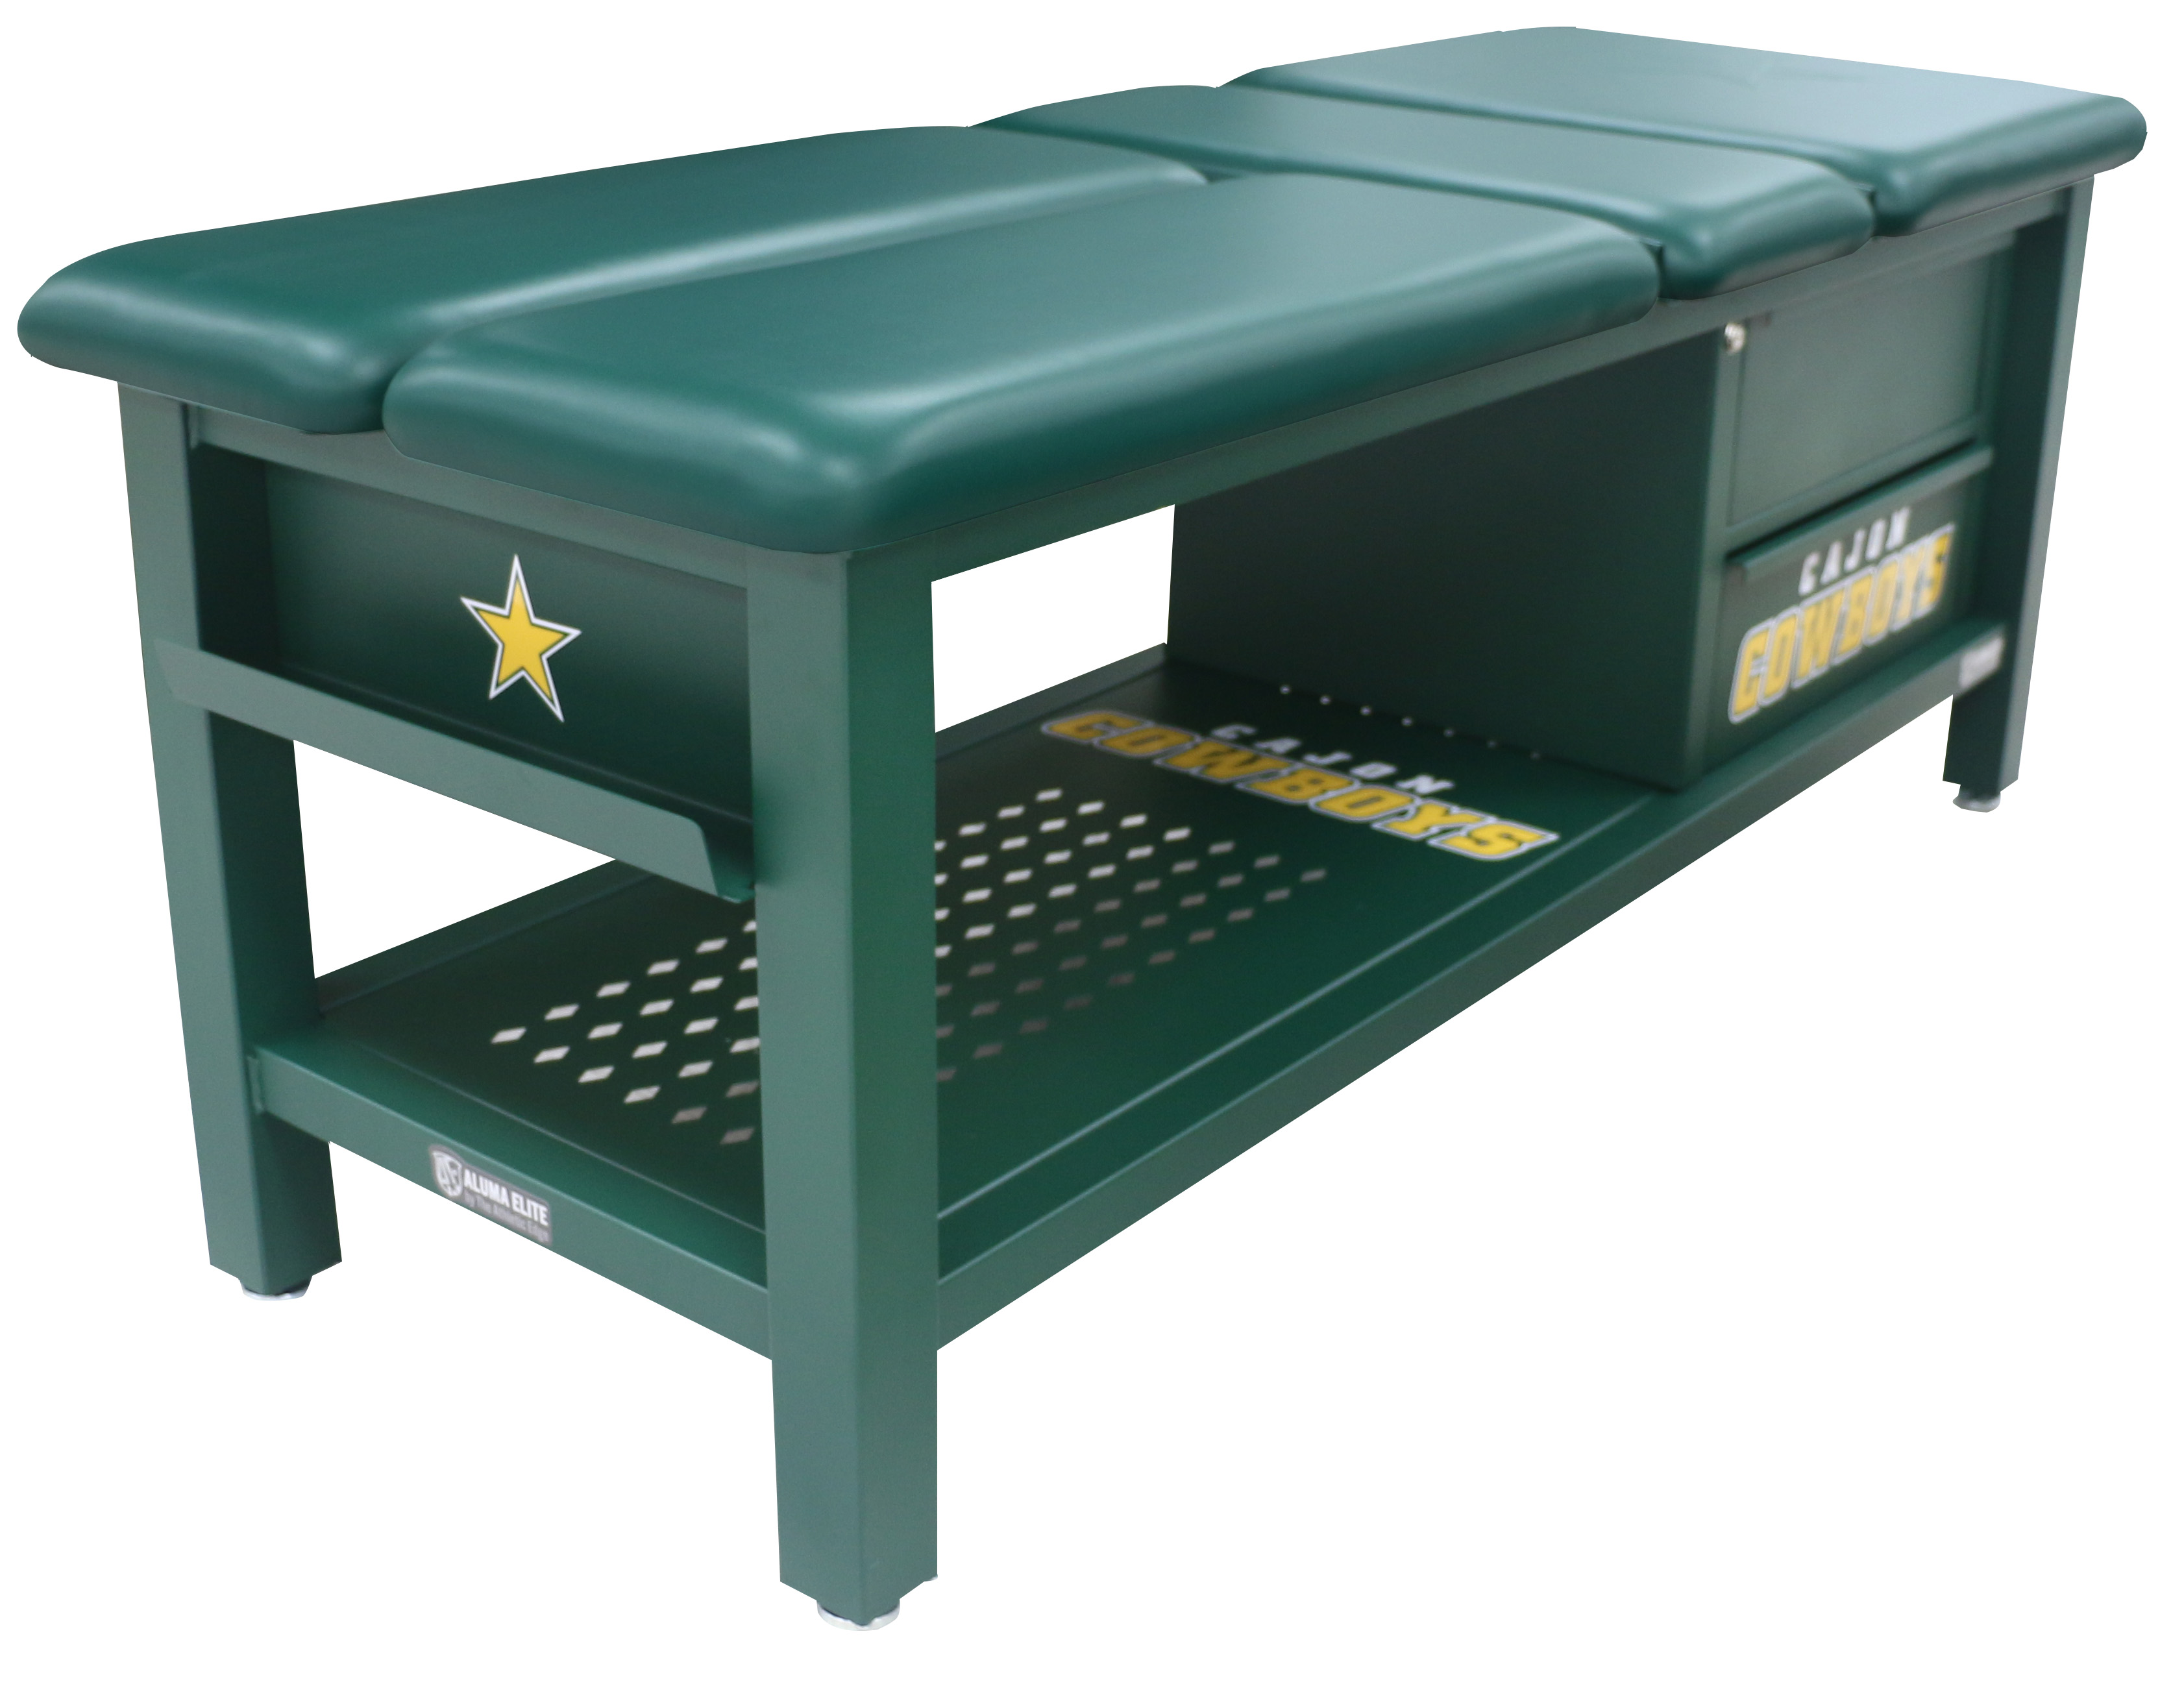 Cajon HS-(Aluma Elite Treatment Table)